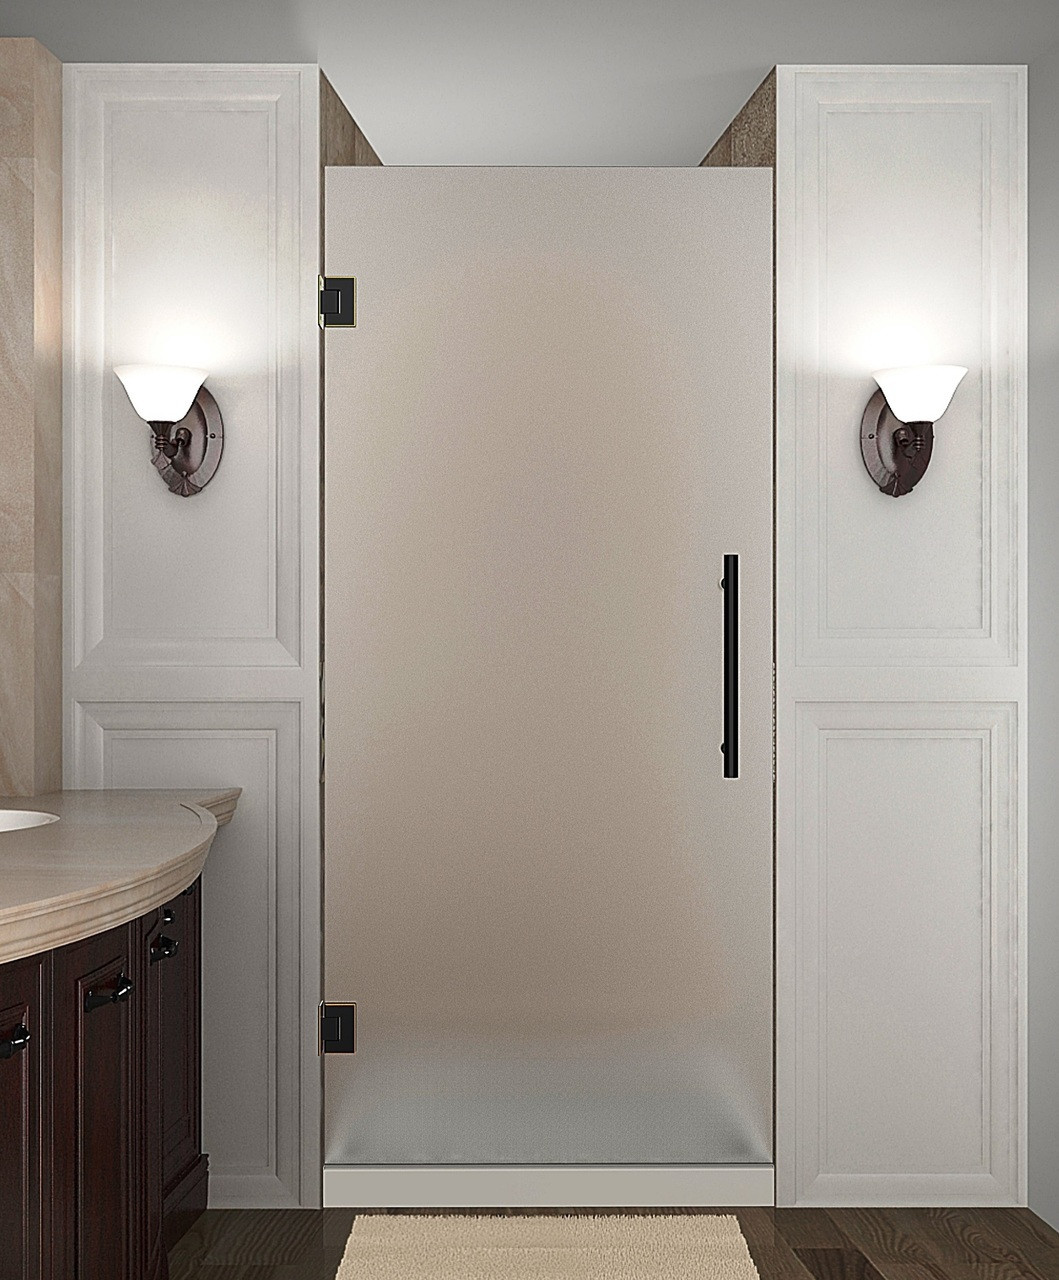 Aston SDR995F-ORB-38-10 Cascadia 38 In x 72 In Hinged Frosted Glass Shower Door In Oil Rubbed Bronze